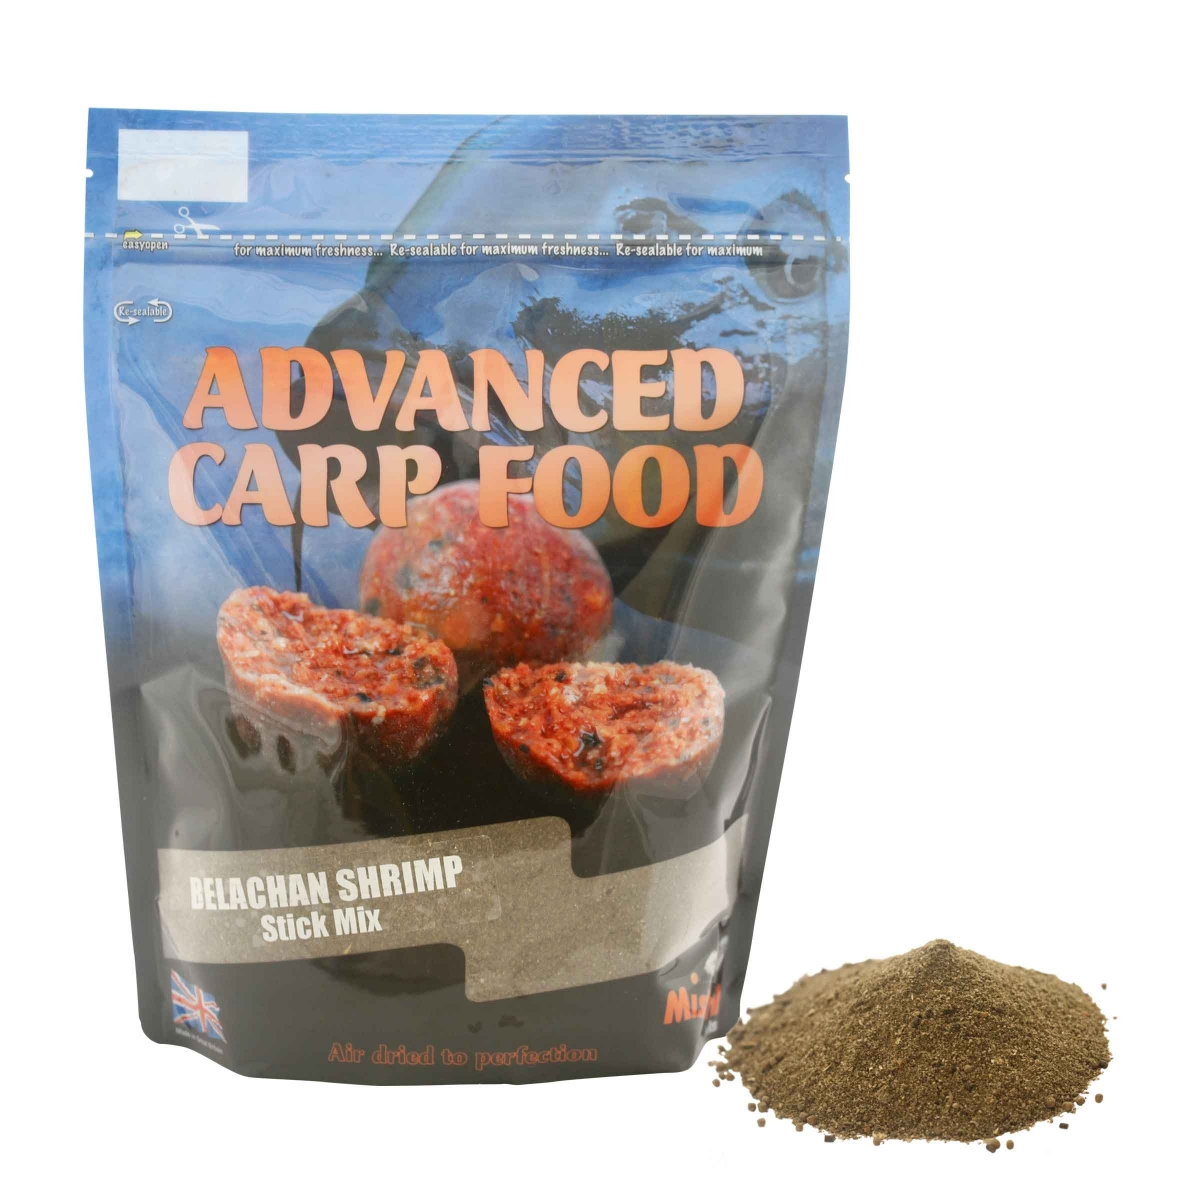 Belachan Shrimp Stick Mix